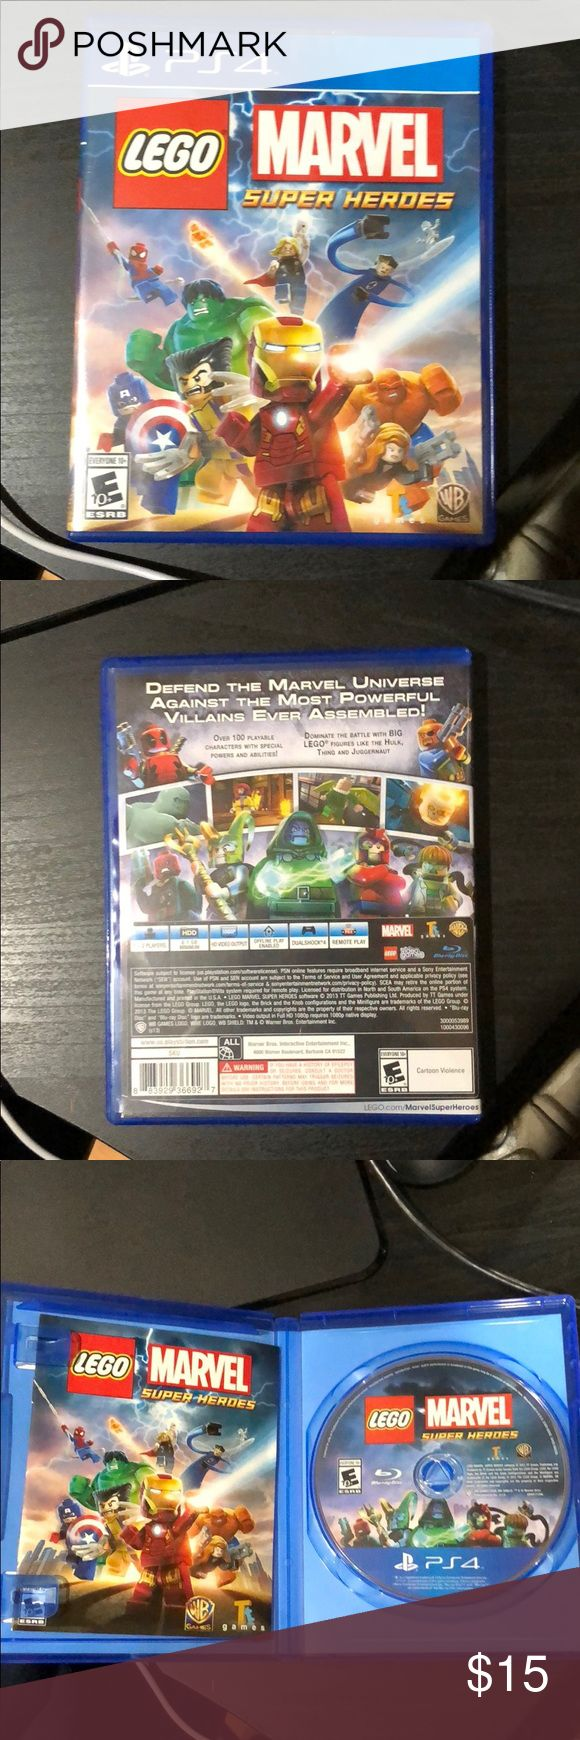 LEGO marvel super hero's PS4 It's a free roam game go anywhere you like and get all the characters! Other